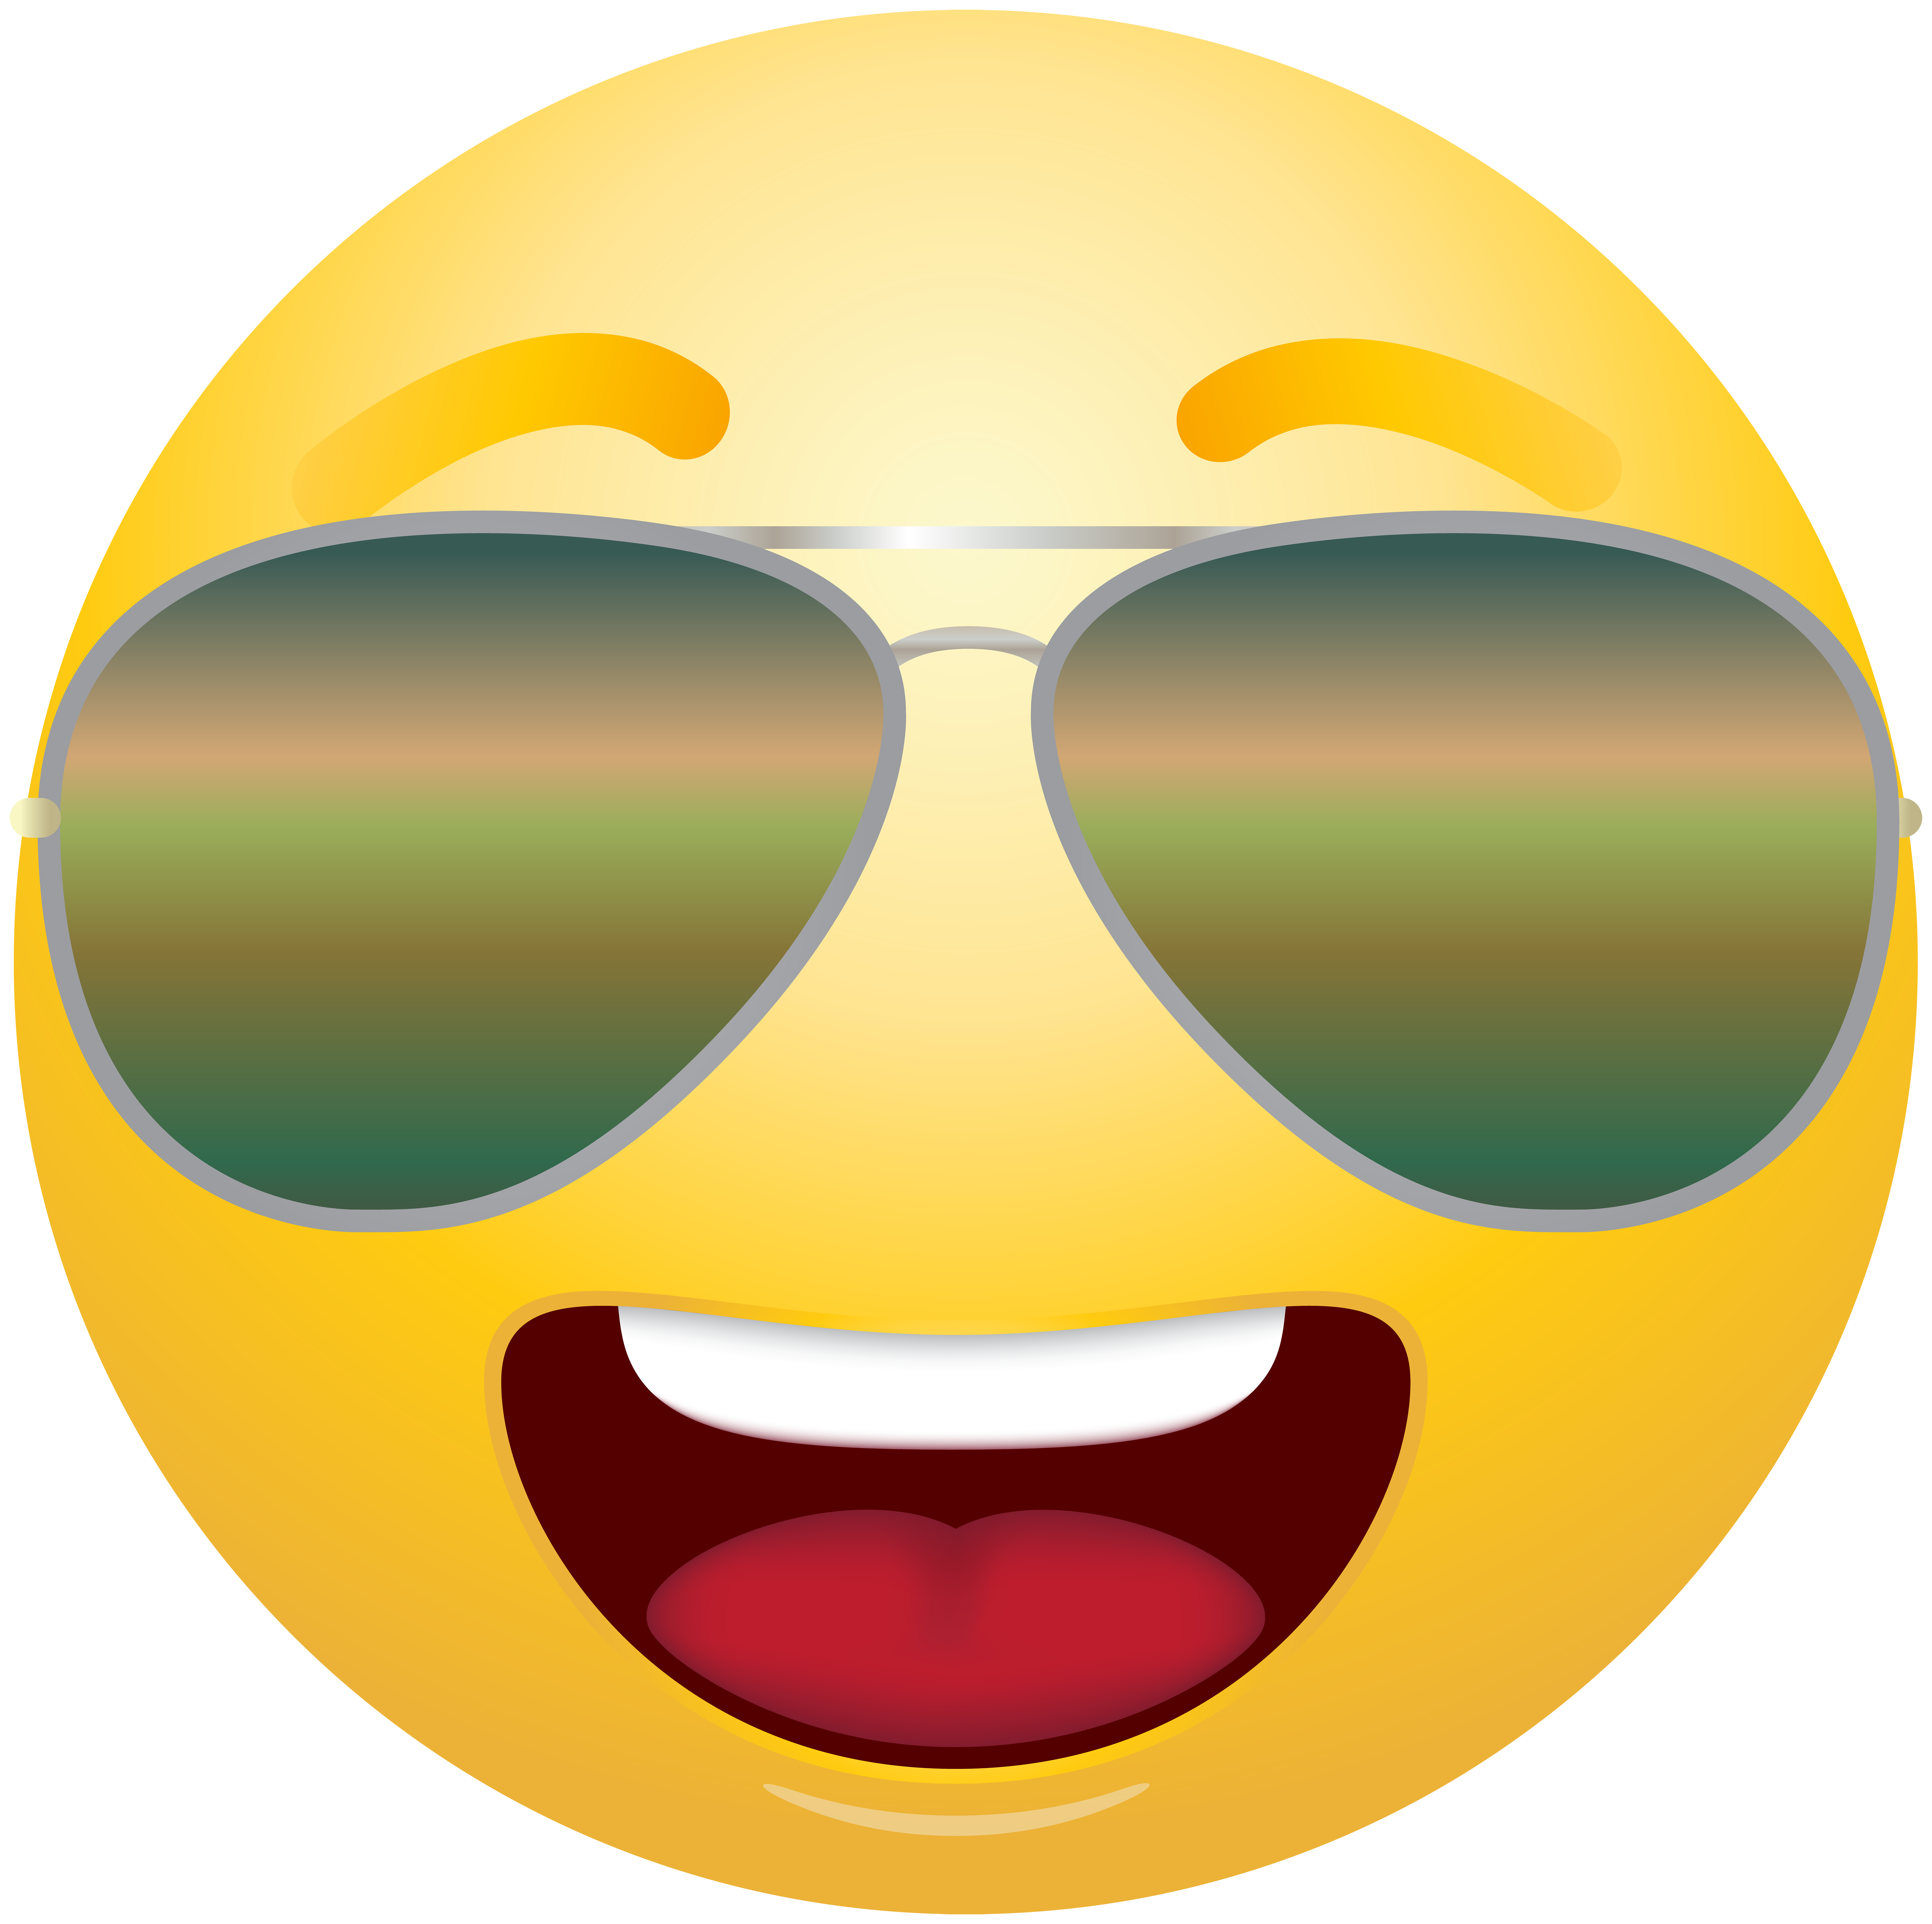 Green sun glasses clipart clip art library Emoticon with Sunglasses PNG Clip Art - Best WEB Clipart clip art library